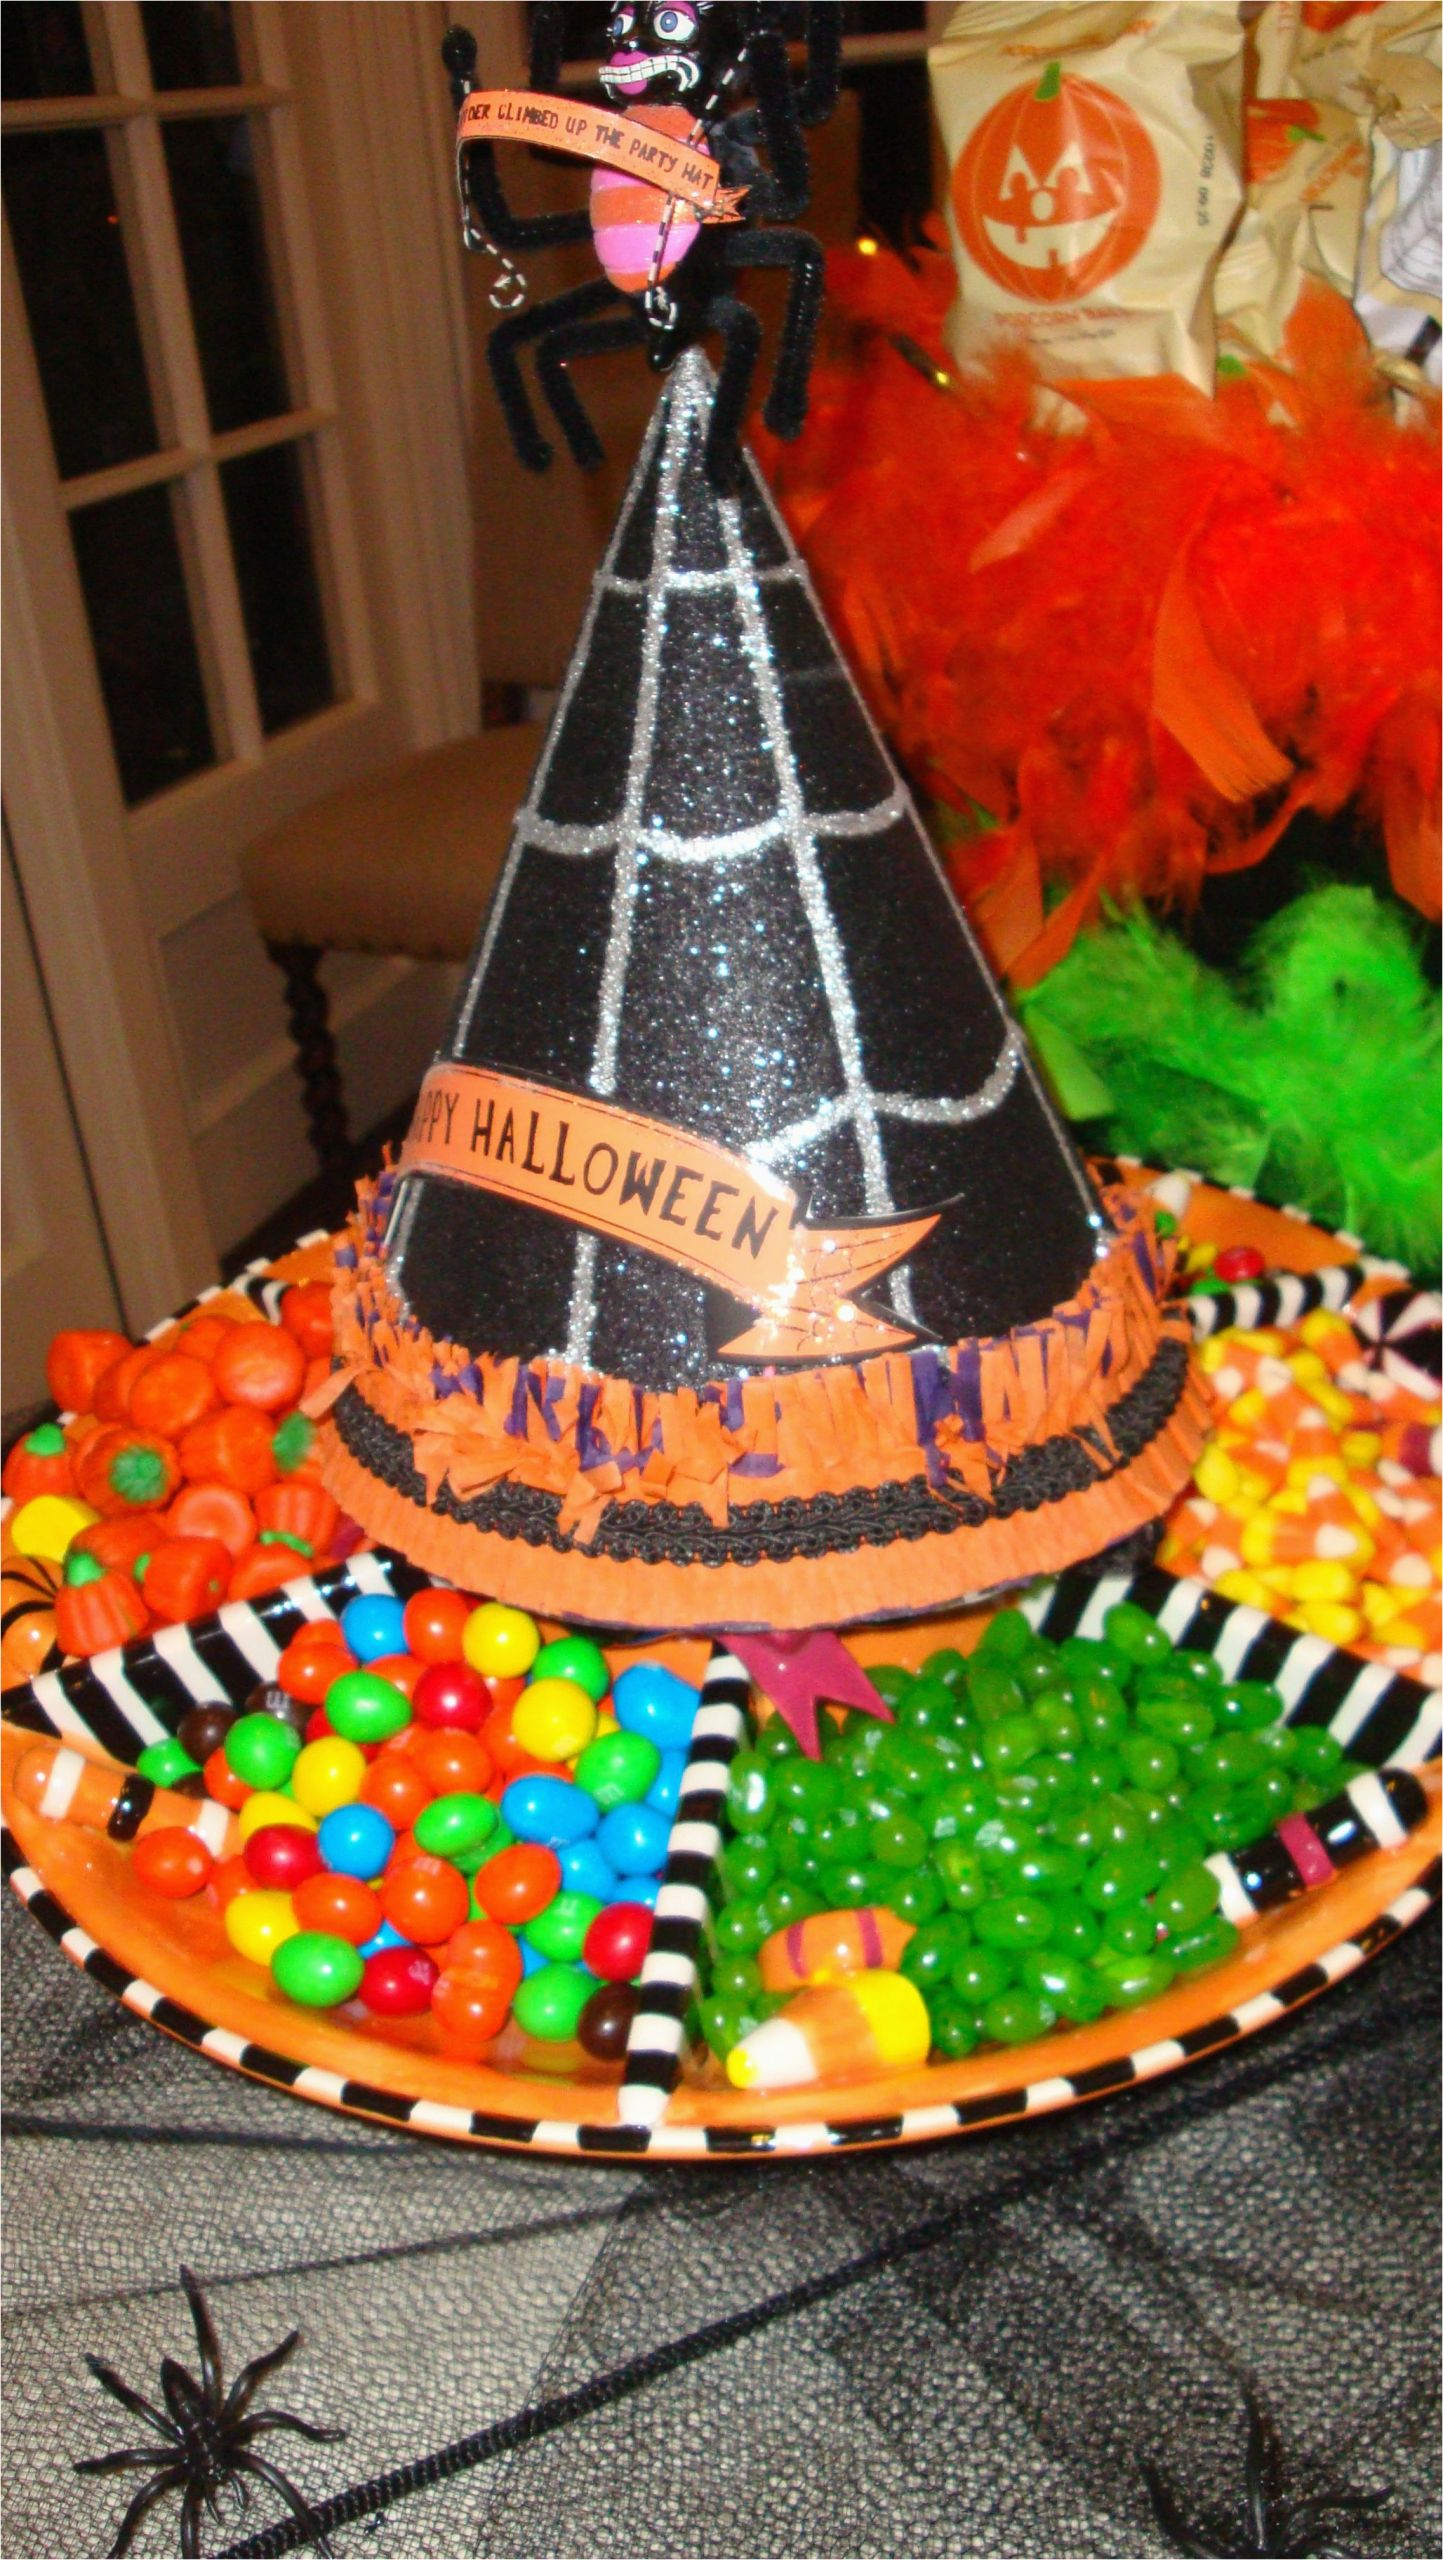 Halloween Birthday Ideas for Him Awesome Halloween Party Idea Pop A Witches Hat On Your